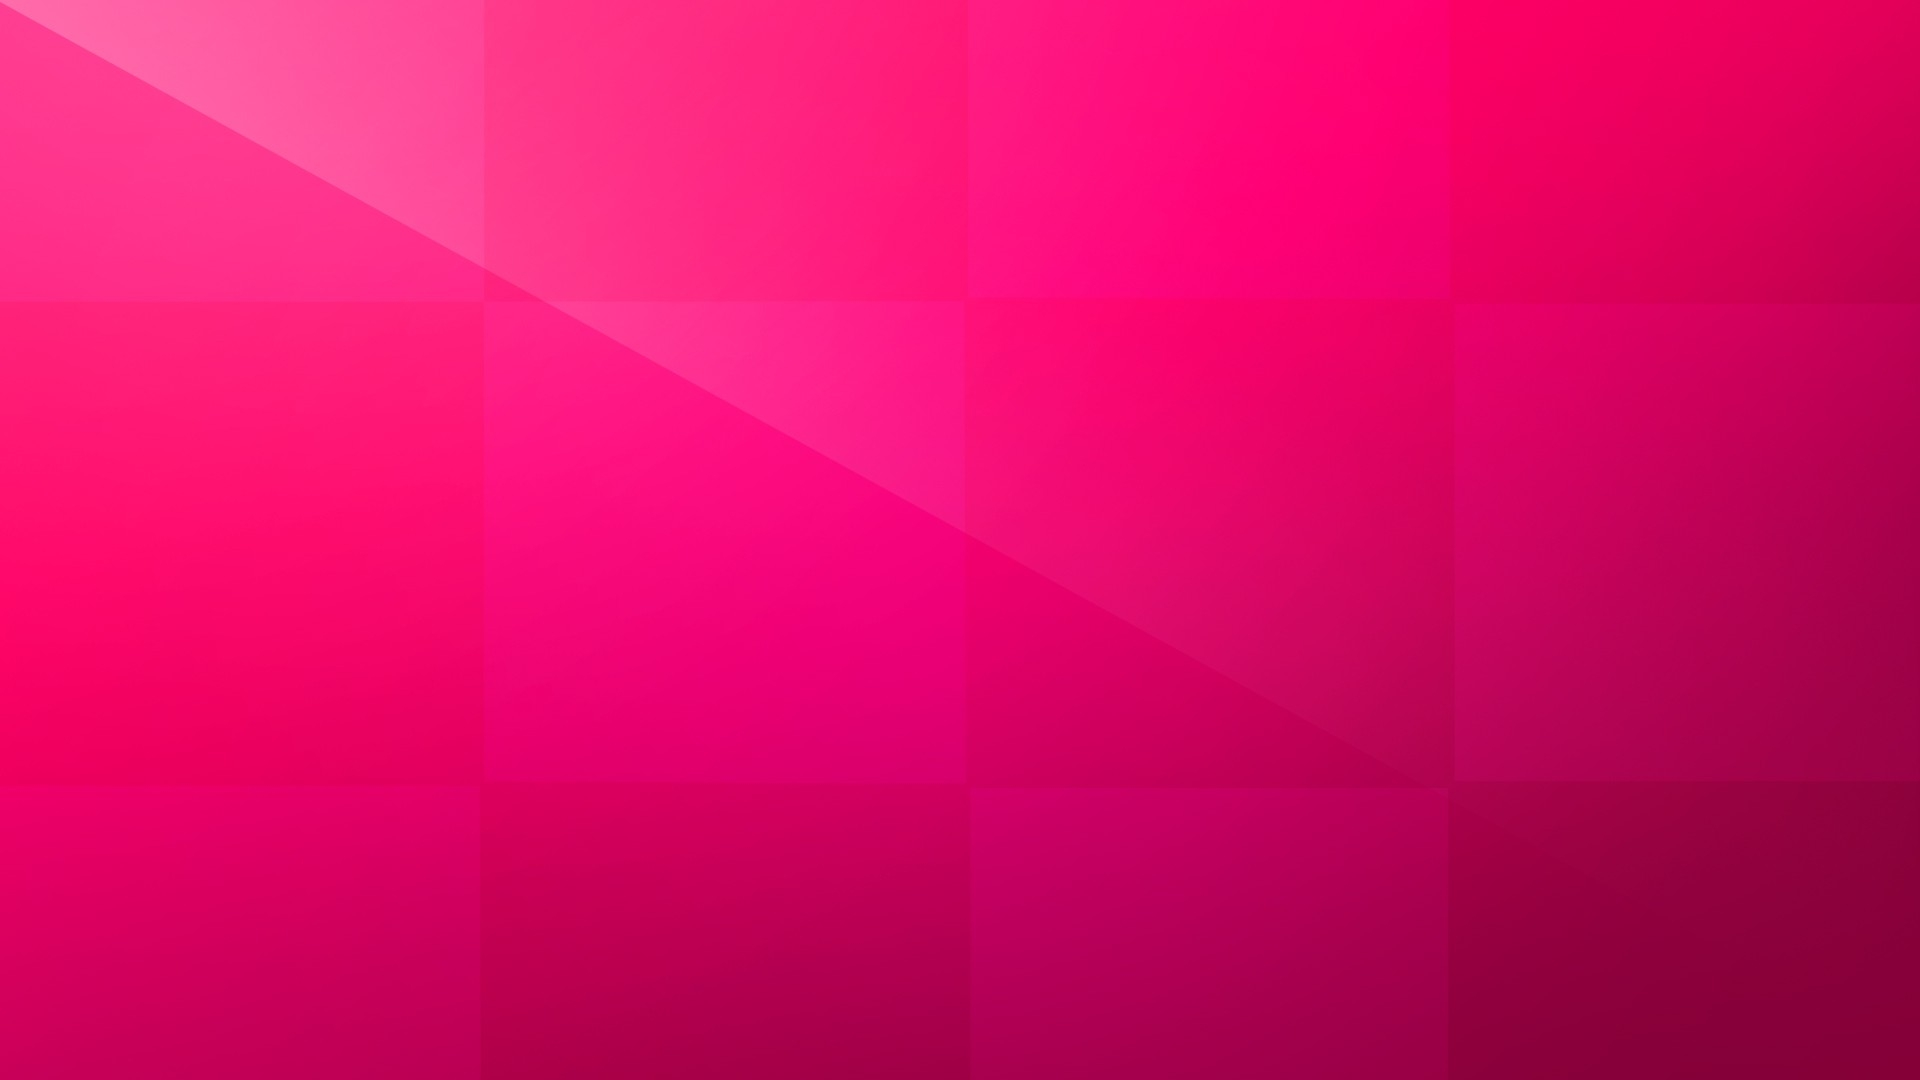 Solid Neon Pink Background